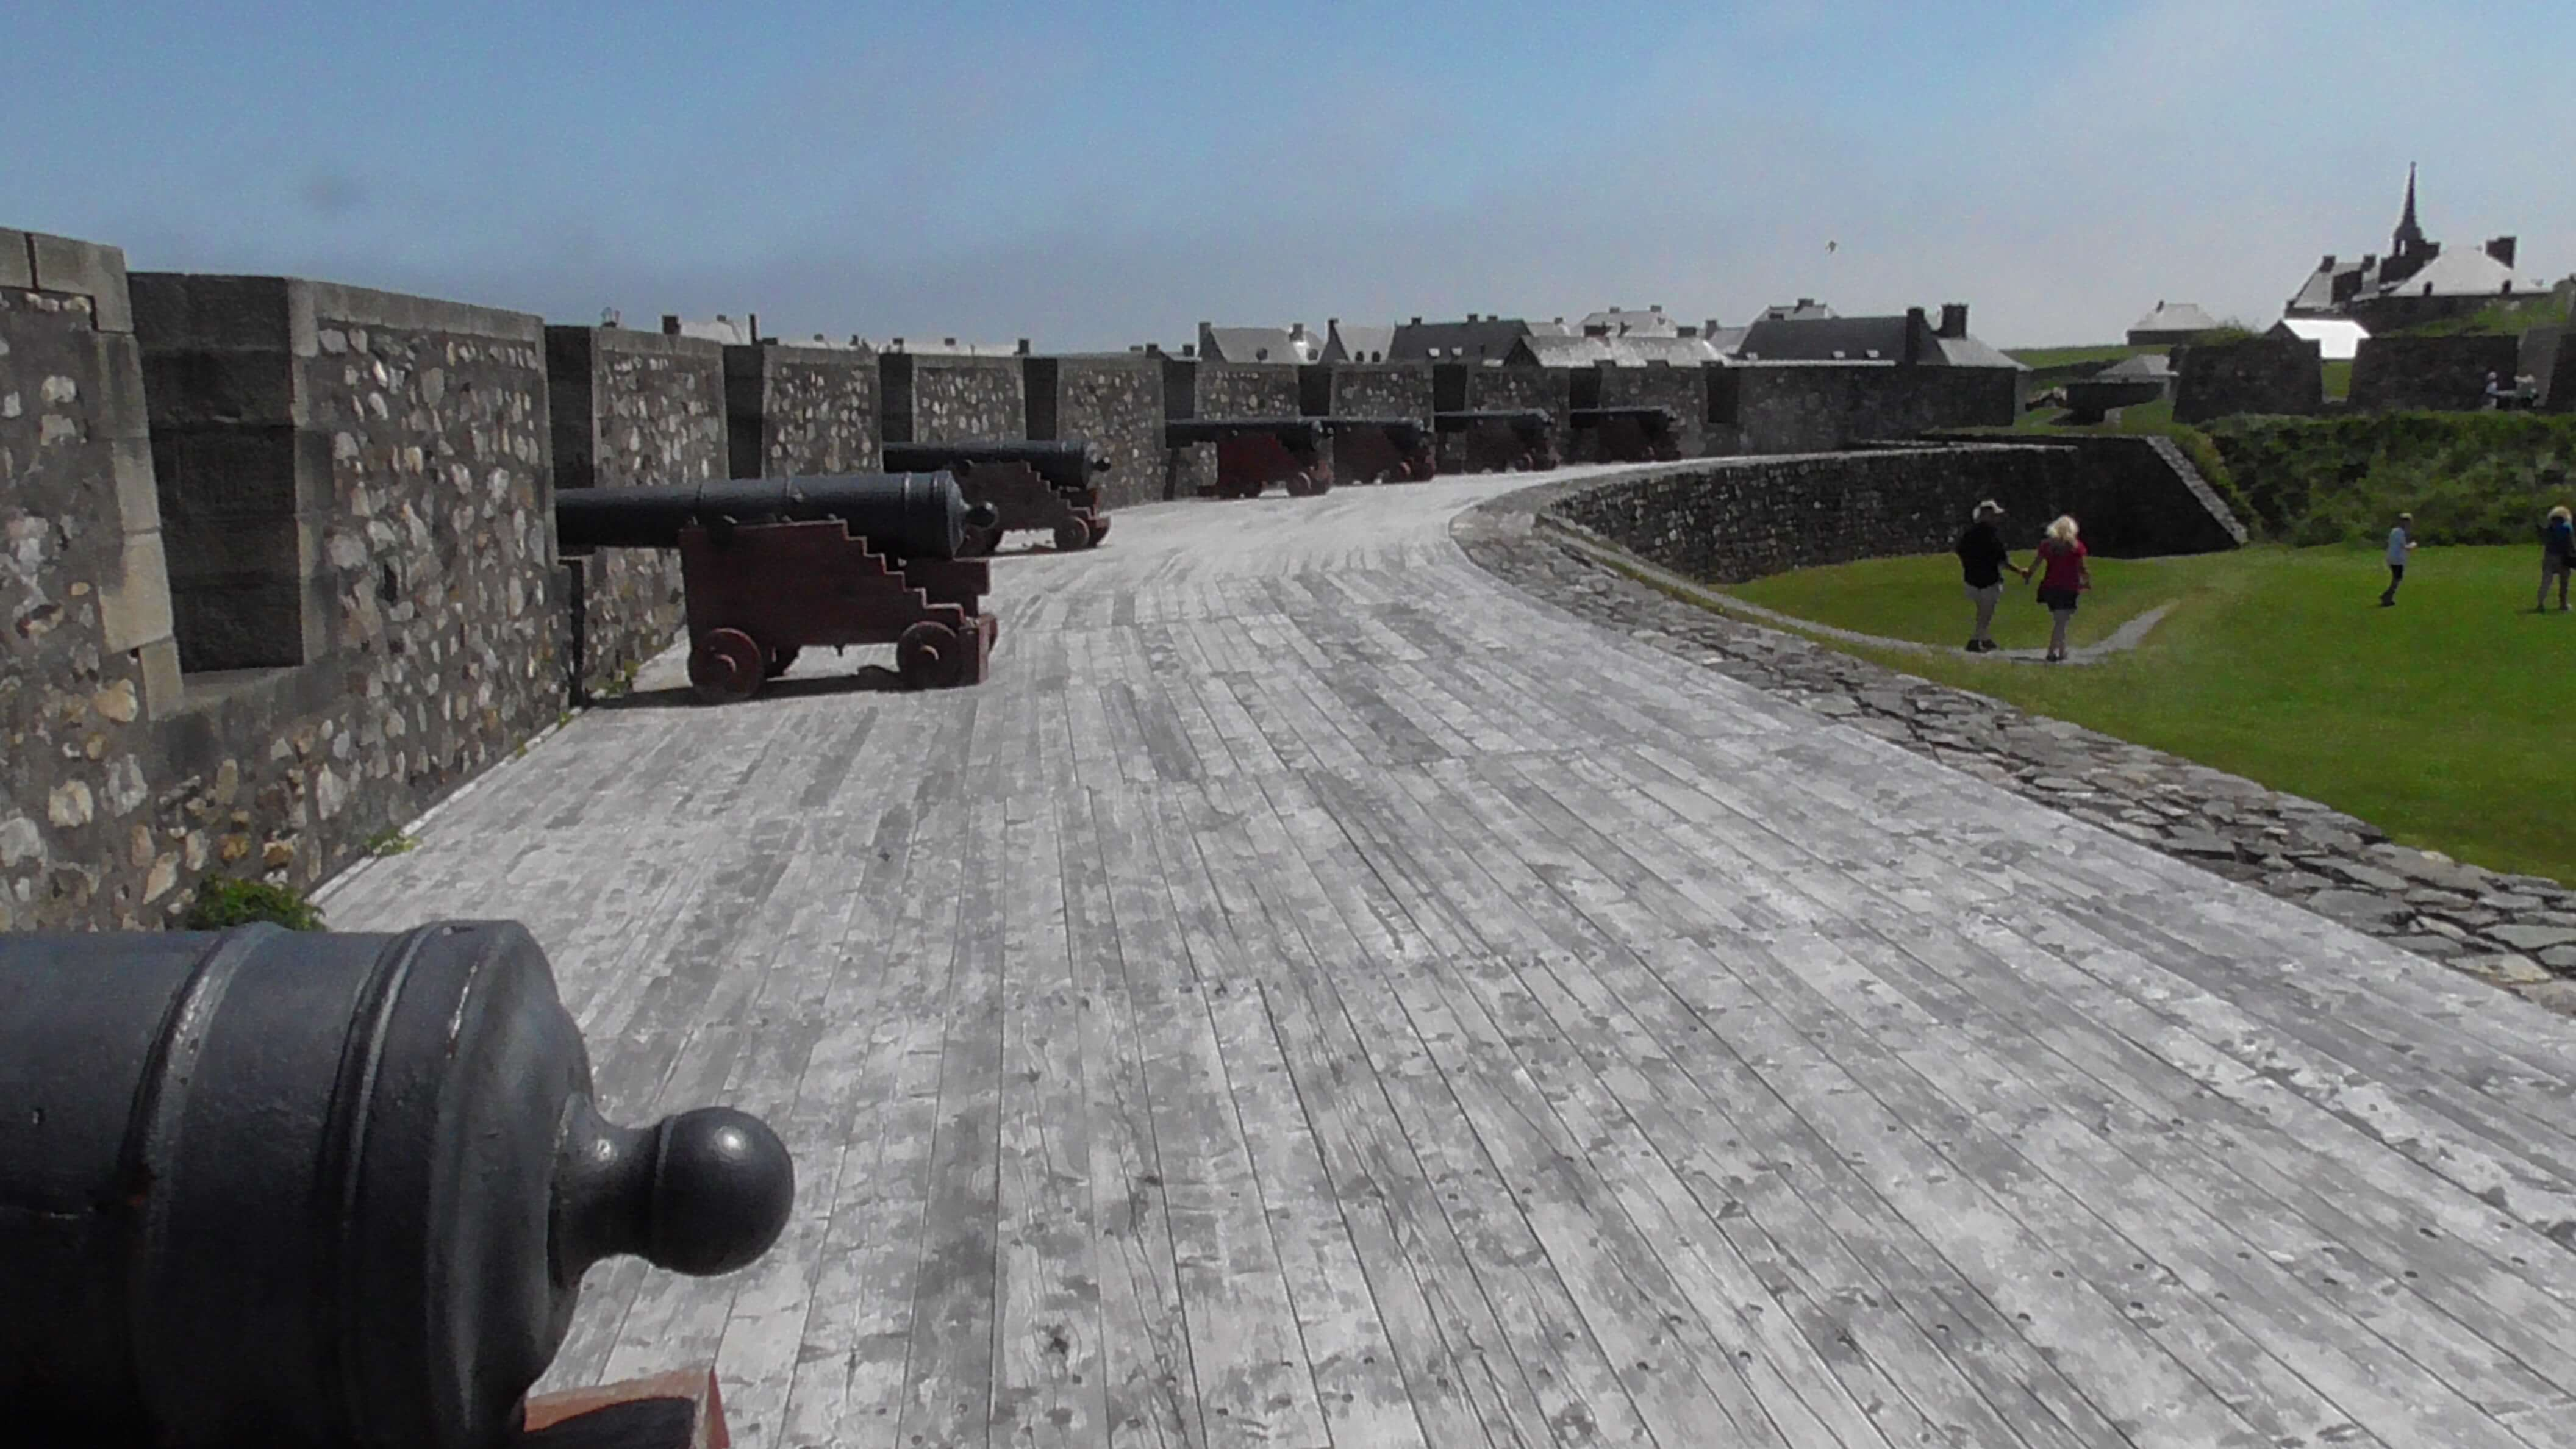 Cannons at Fort Louisbourg